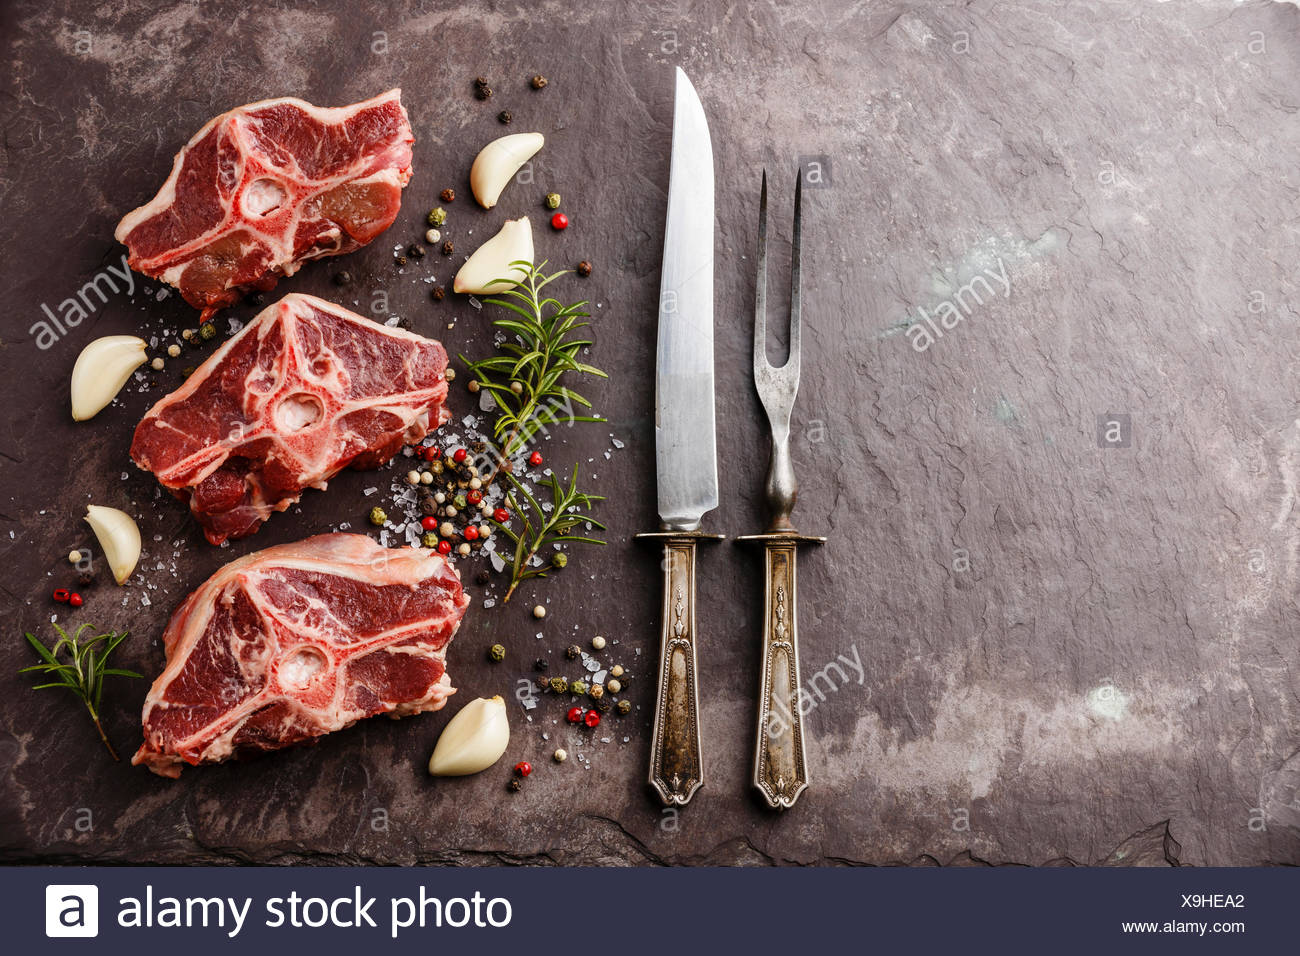 Raw fresh meat lamb mutton saddle with herbs and spices on stone slate plate - Stock Image